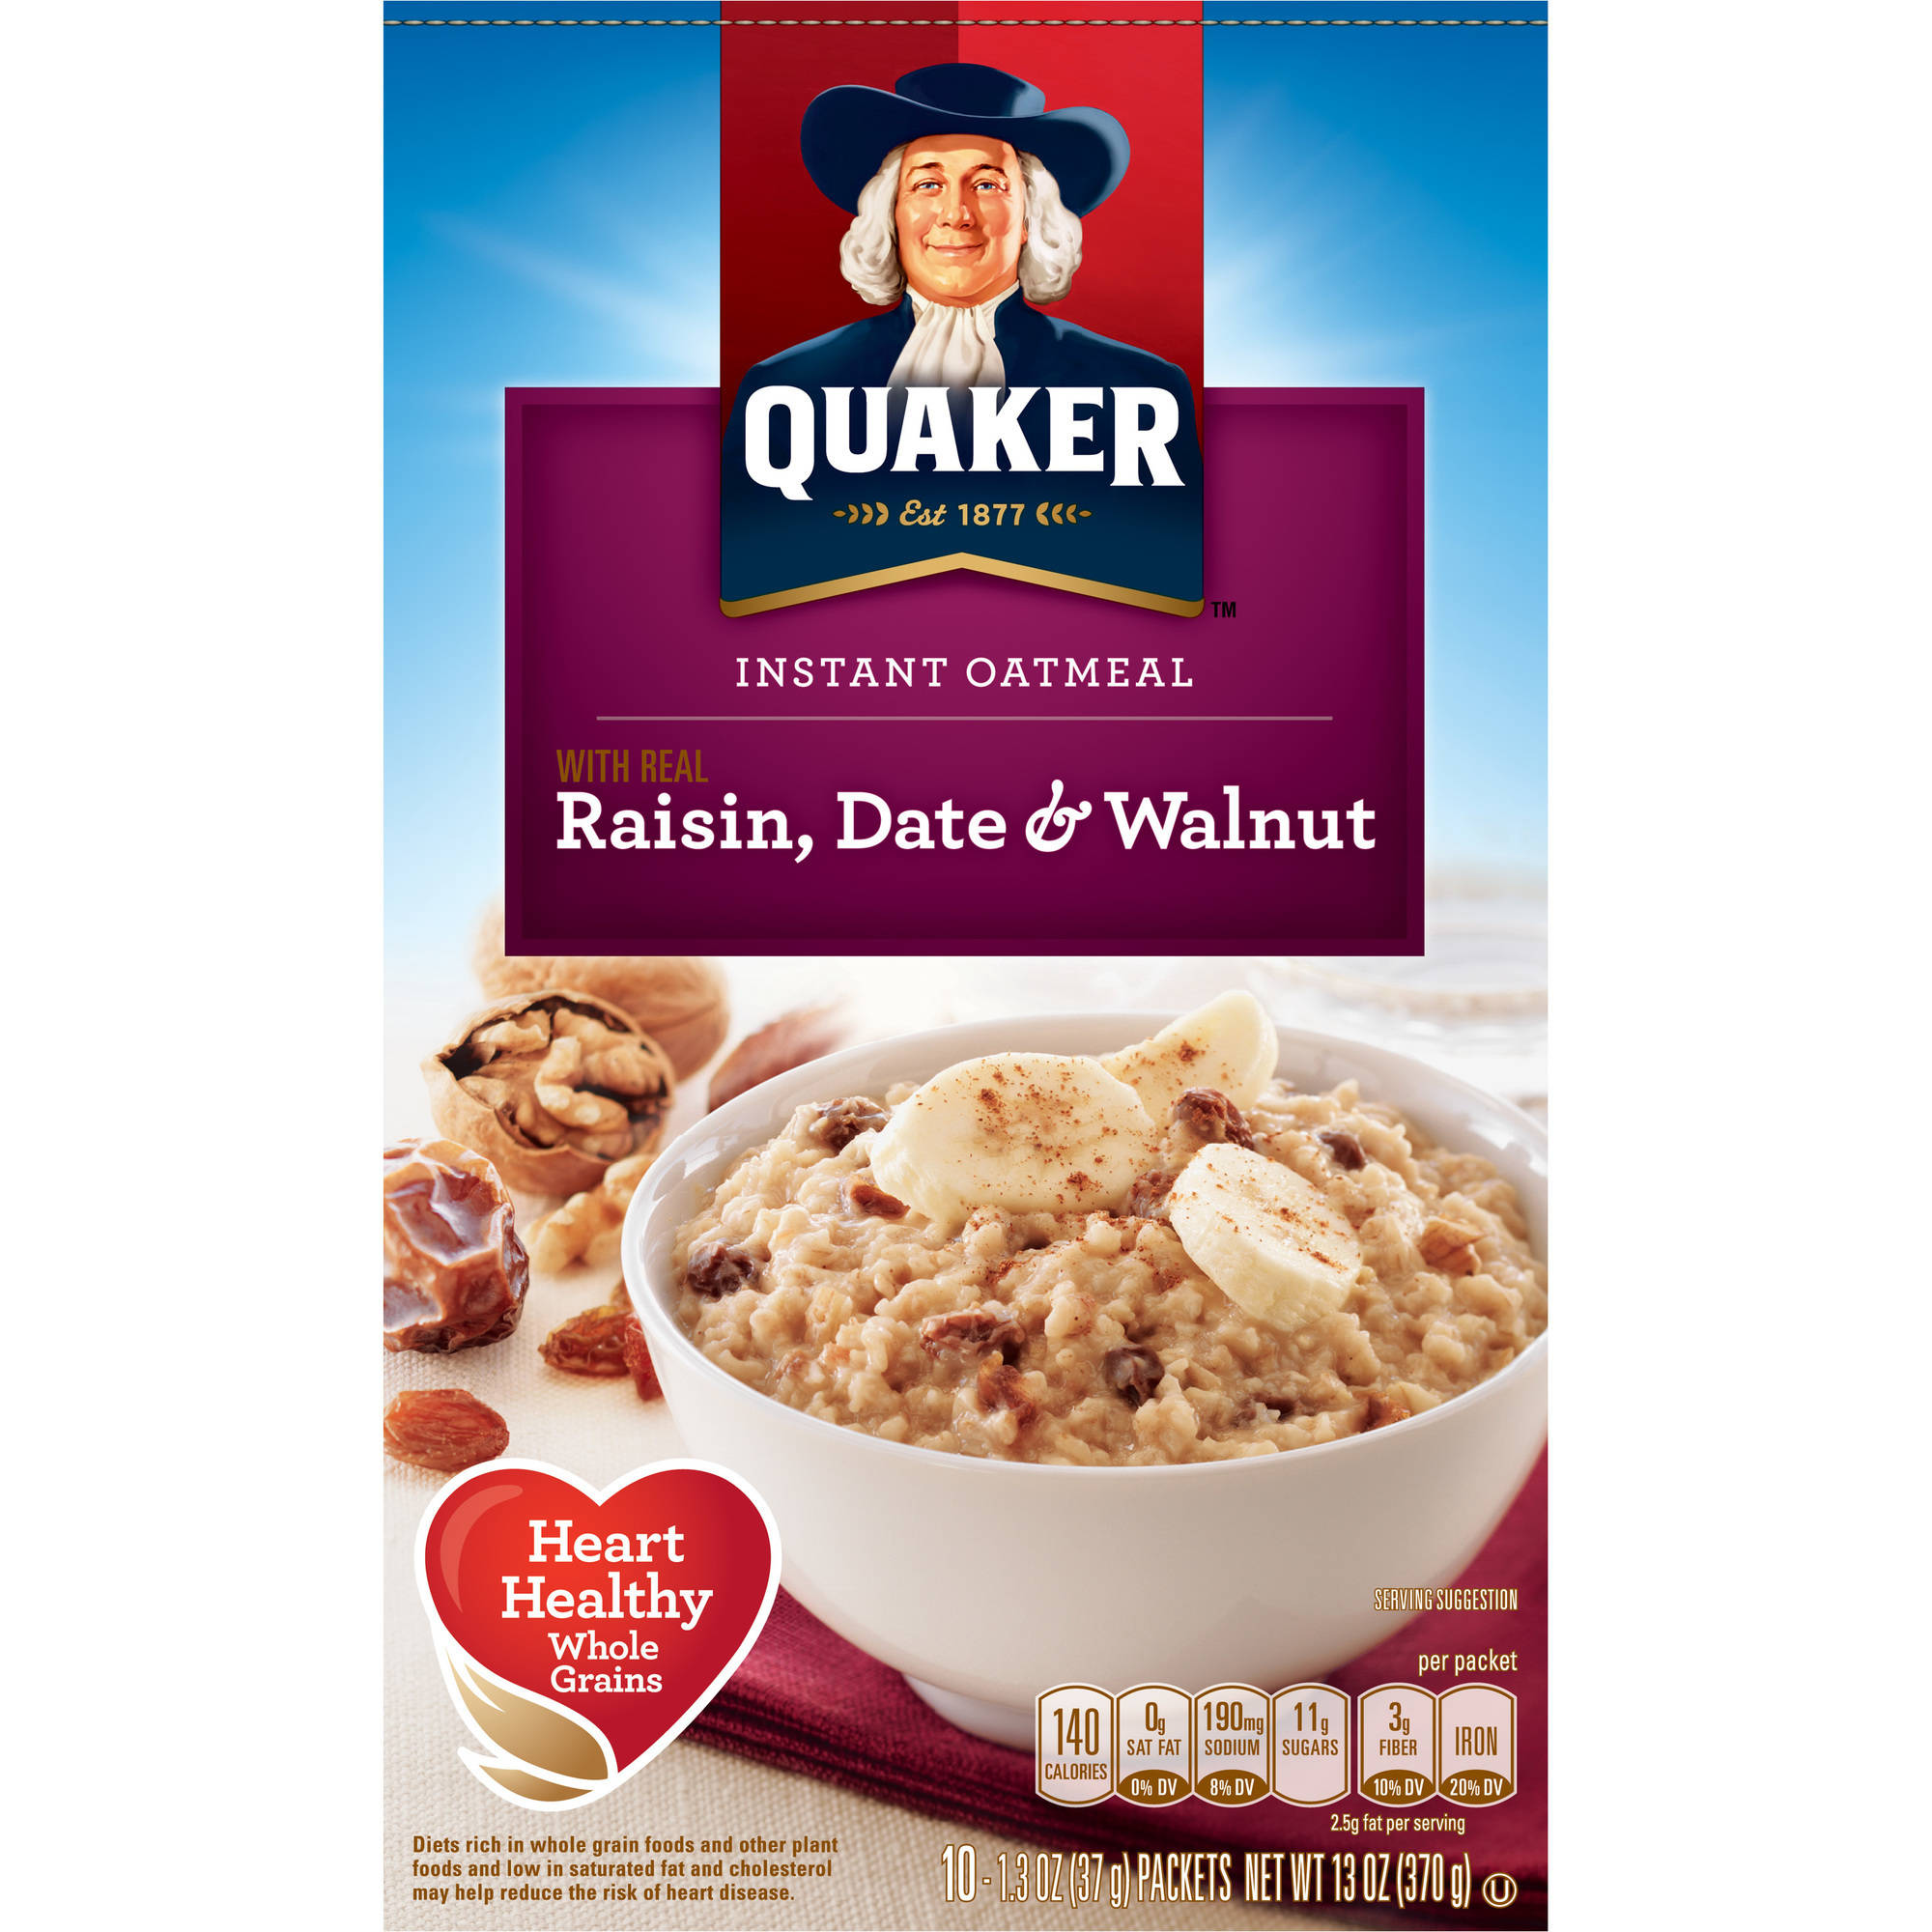 Quaker Raisin Date & Walnut Instant Oatmeal, 13 oz